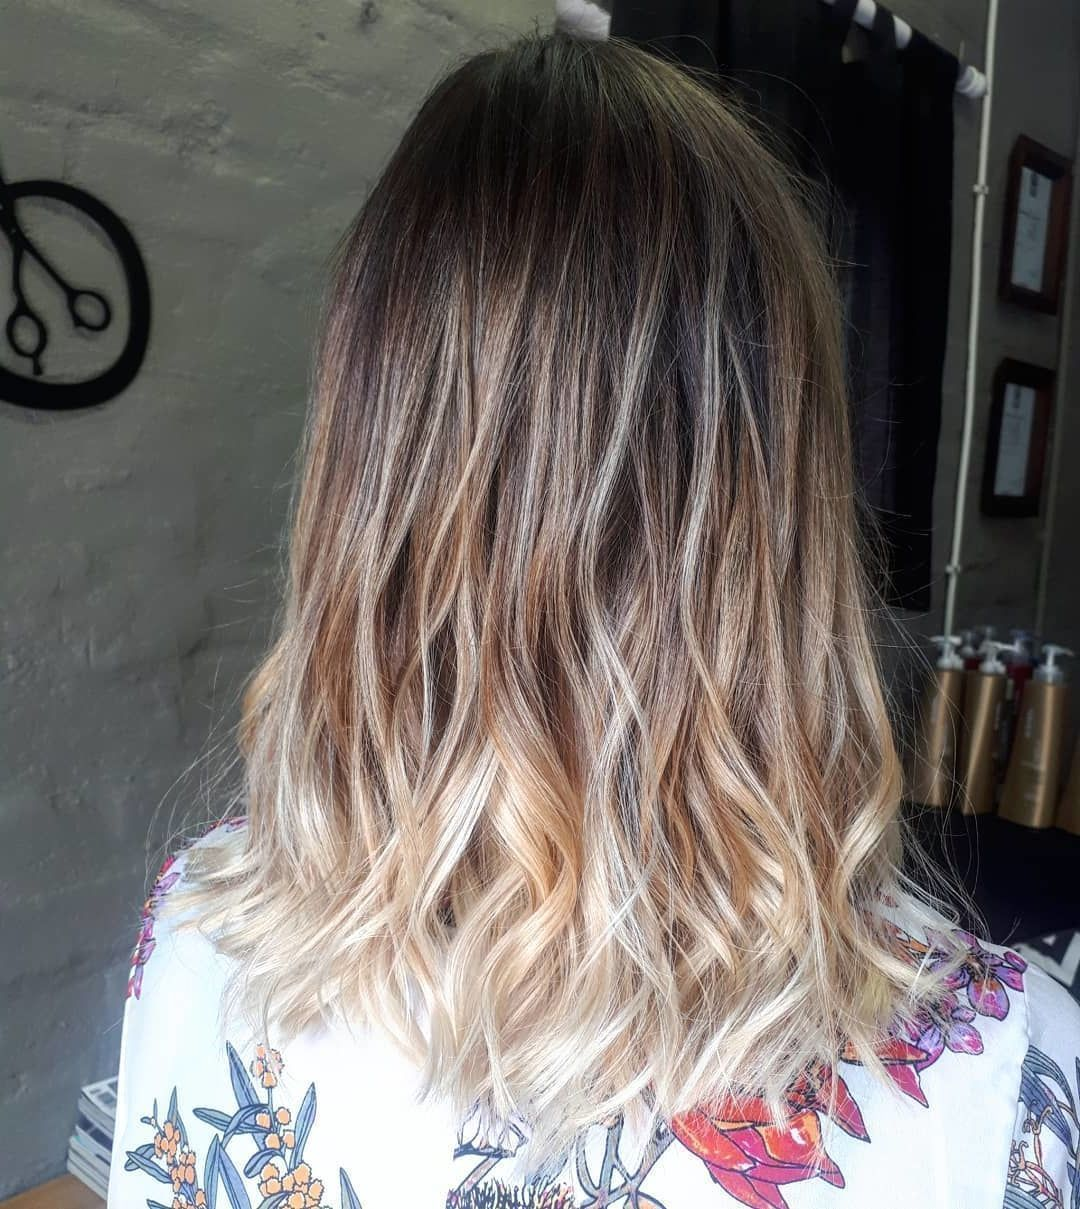 25 Ash Blonde Balayage Hair Color Ideas #lightashblonde 25 Ash Blonde Balayage Hair Color Ideas, Looking for ash blonde balayage hair color ideas? Then, hair color of your own should be darker than typical blonde. Light ash blonde balayage may tru..., Balayage #lightashblonde 25 Ash Blonde Balayage Hair Color Ideas #lightashblonde 25 Ash Blonde Balayage Hair Color Ideas, Looking for ash blonde balayage hair color ideas? Then, hair color of your own should be darker than typical blonde. Light ash #lightashblonde